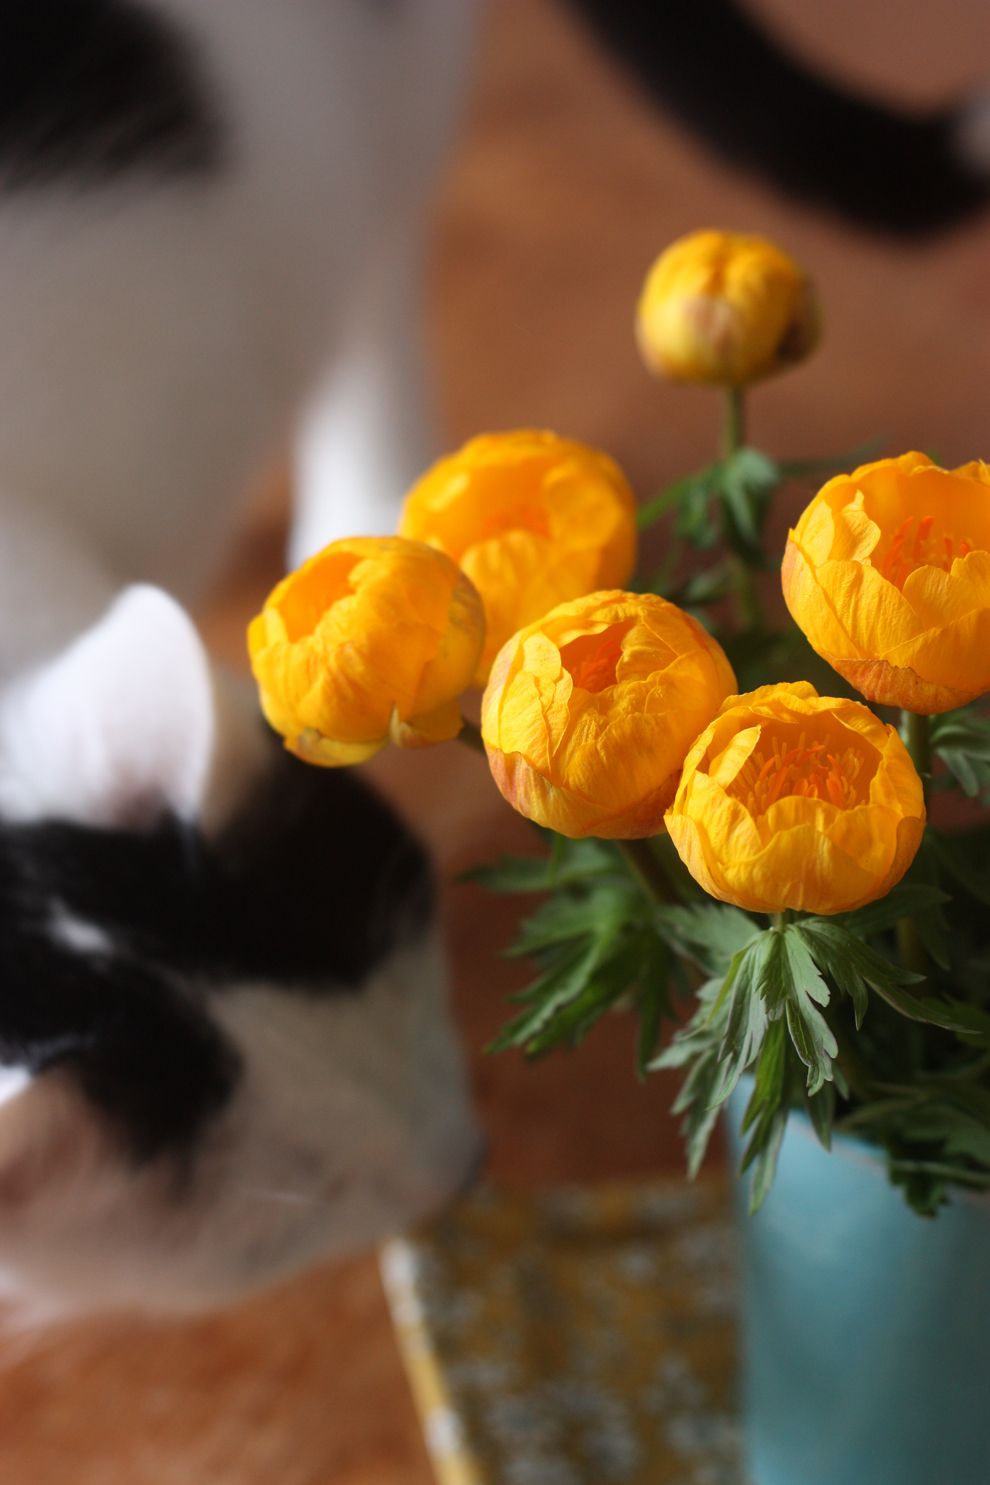 Trollius_by_madame_love_cheddar_the_cat